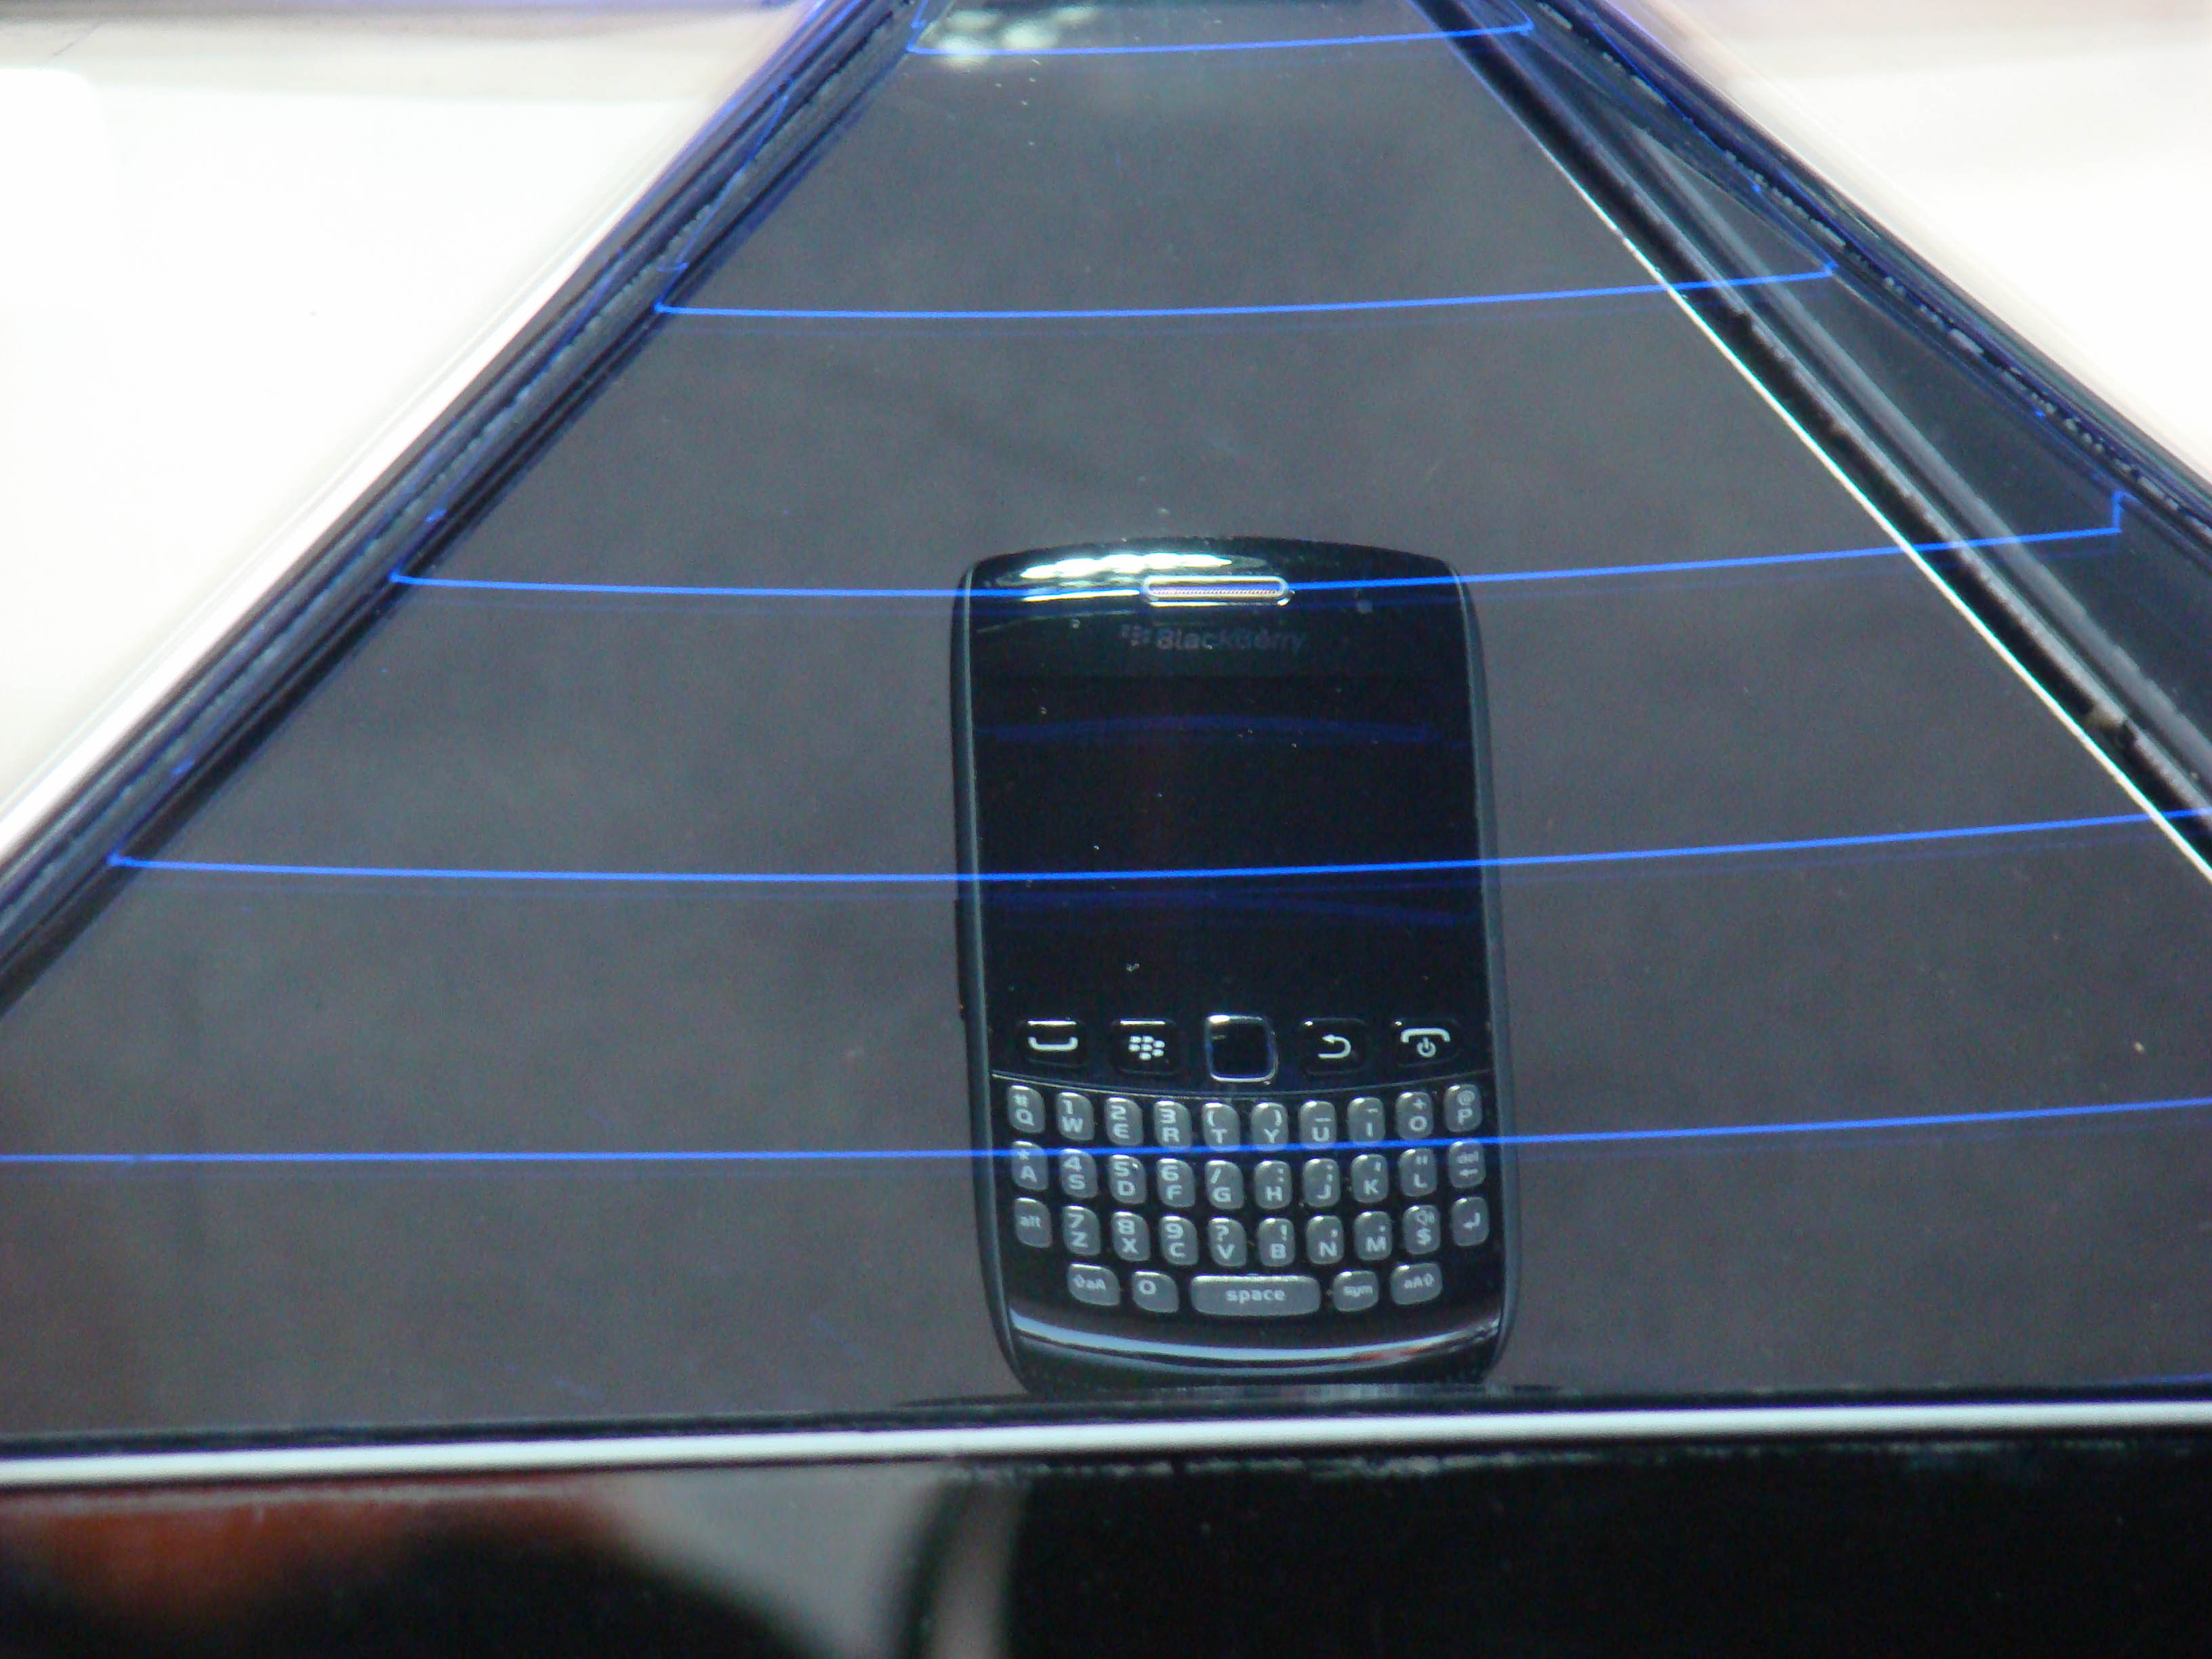 blackberry-nextel-20